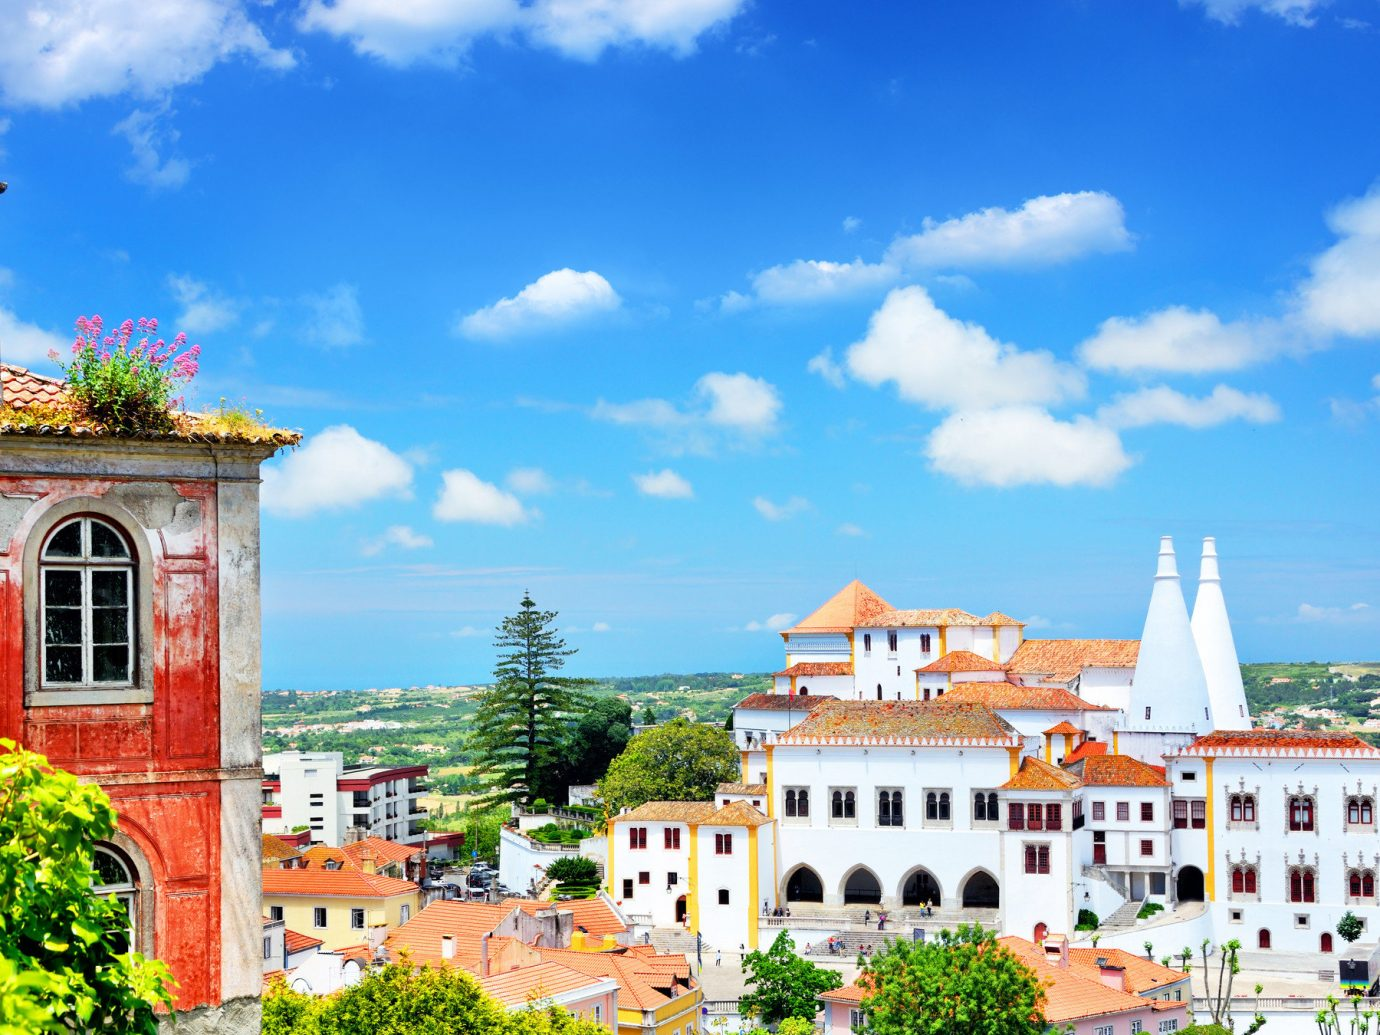 Trip Ideas sky outdoor building Town landmark City human settlement neighbourhood tourism vacation estate cityscape residential area white Village tower palace stone surrounded